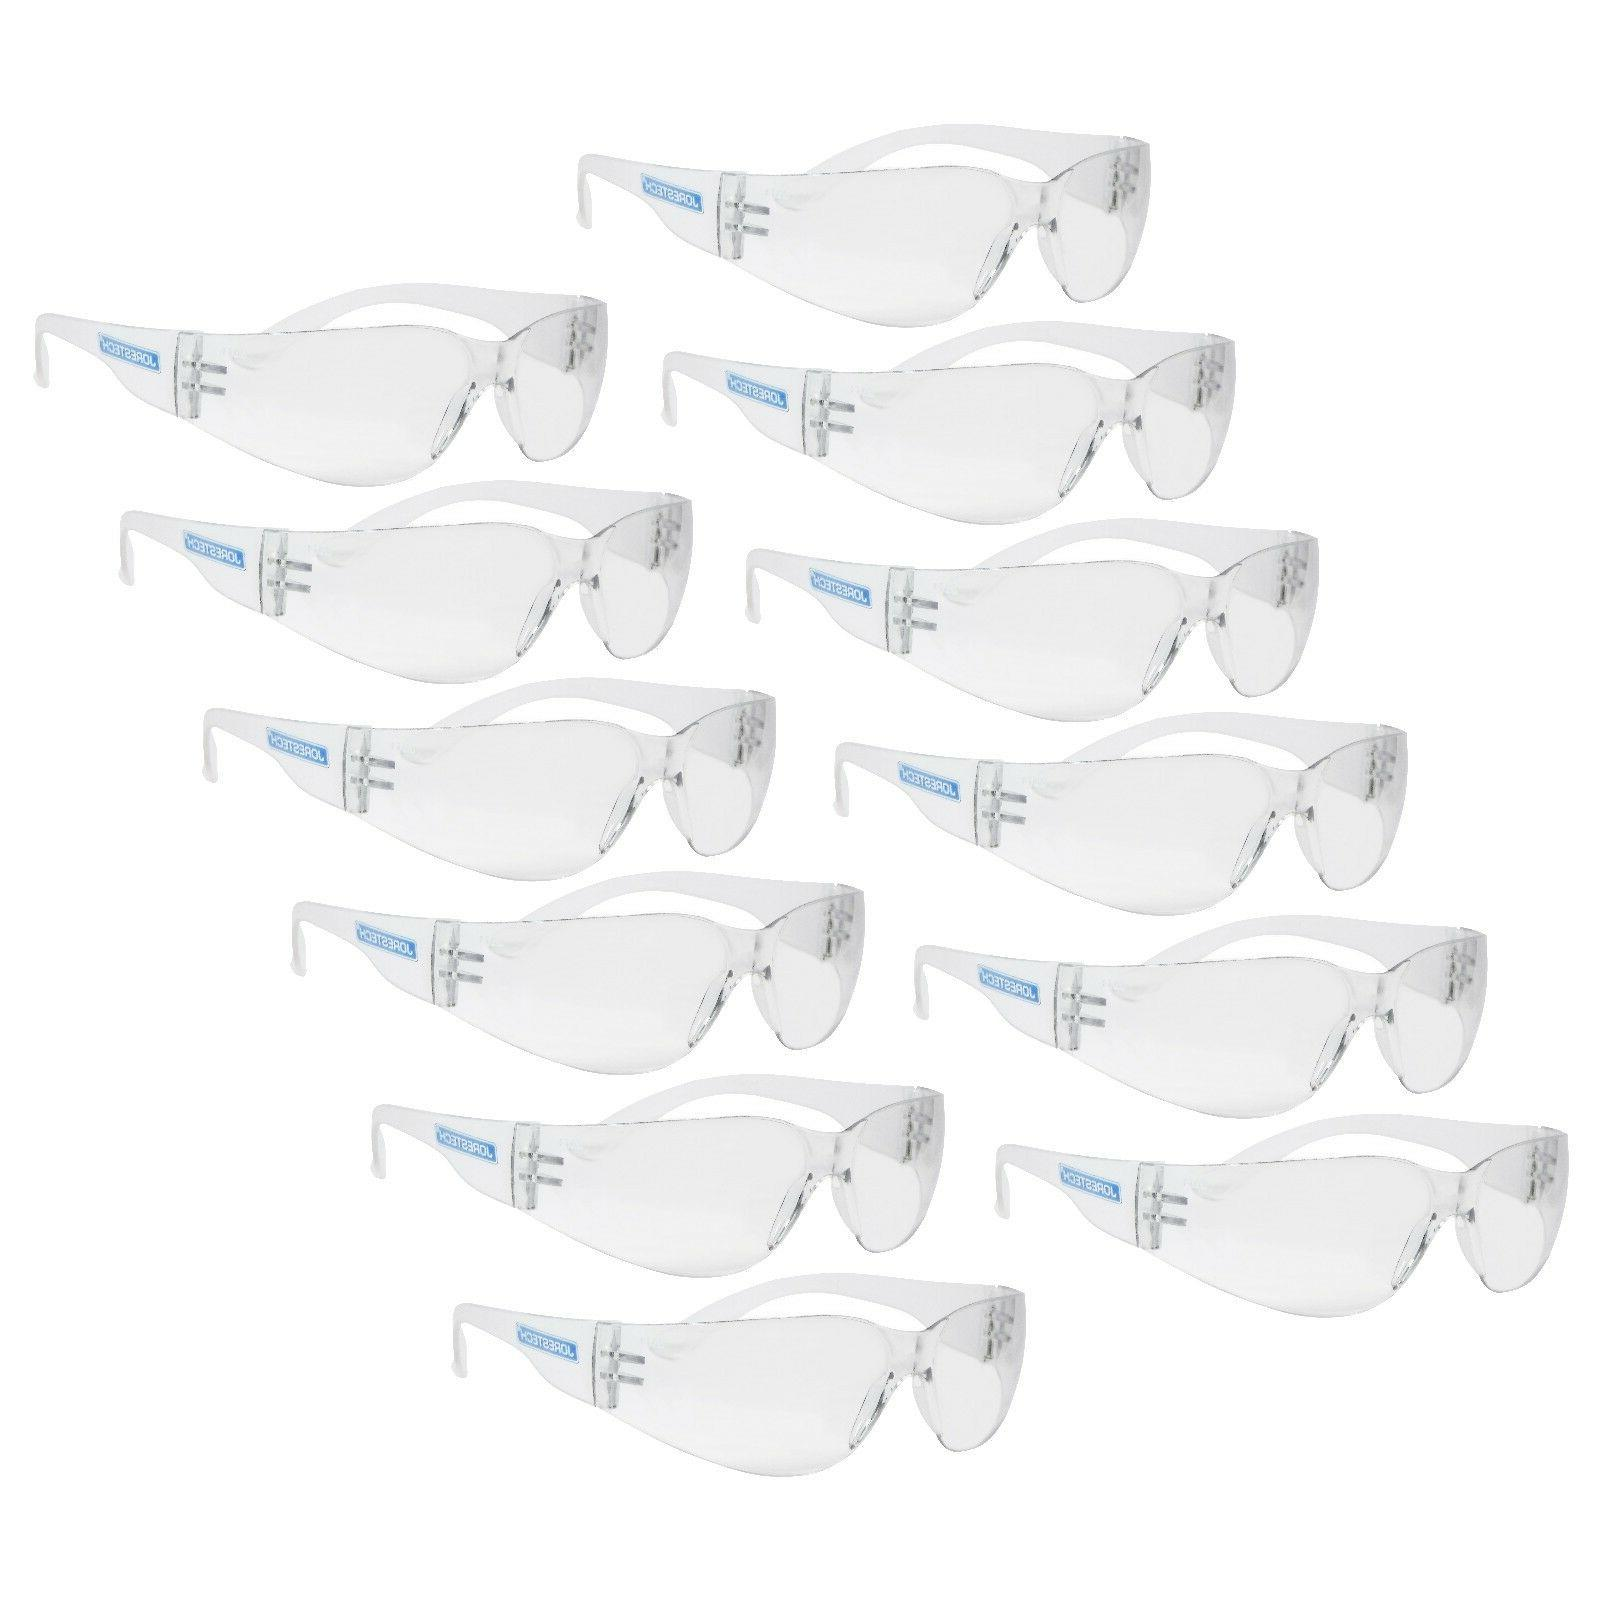 12 PAIR JORESTECH CLEAR UV400 LENS LOT SAFETY GLASSES BULK N